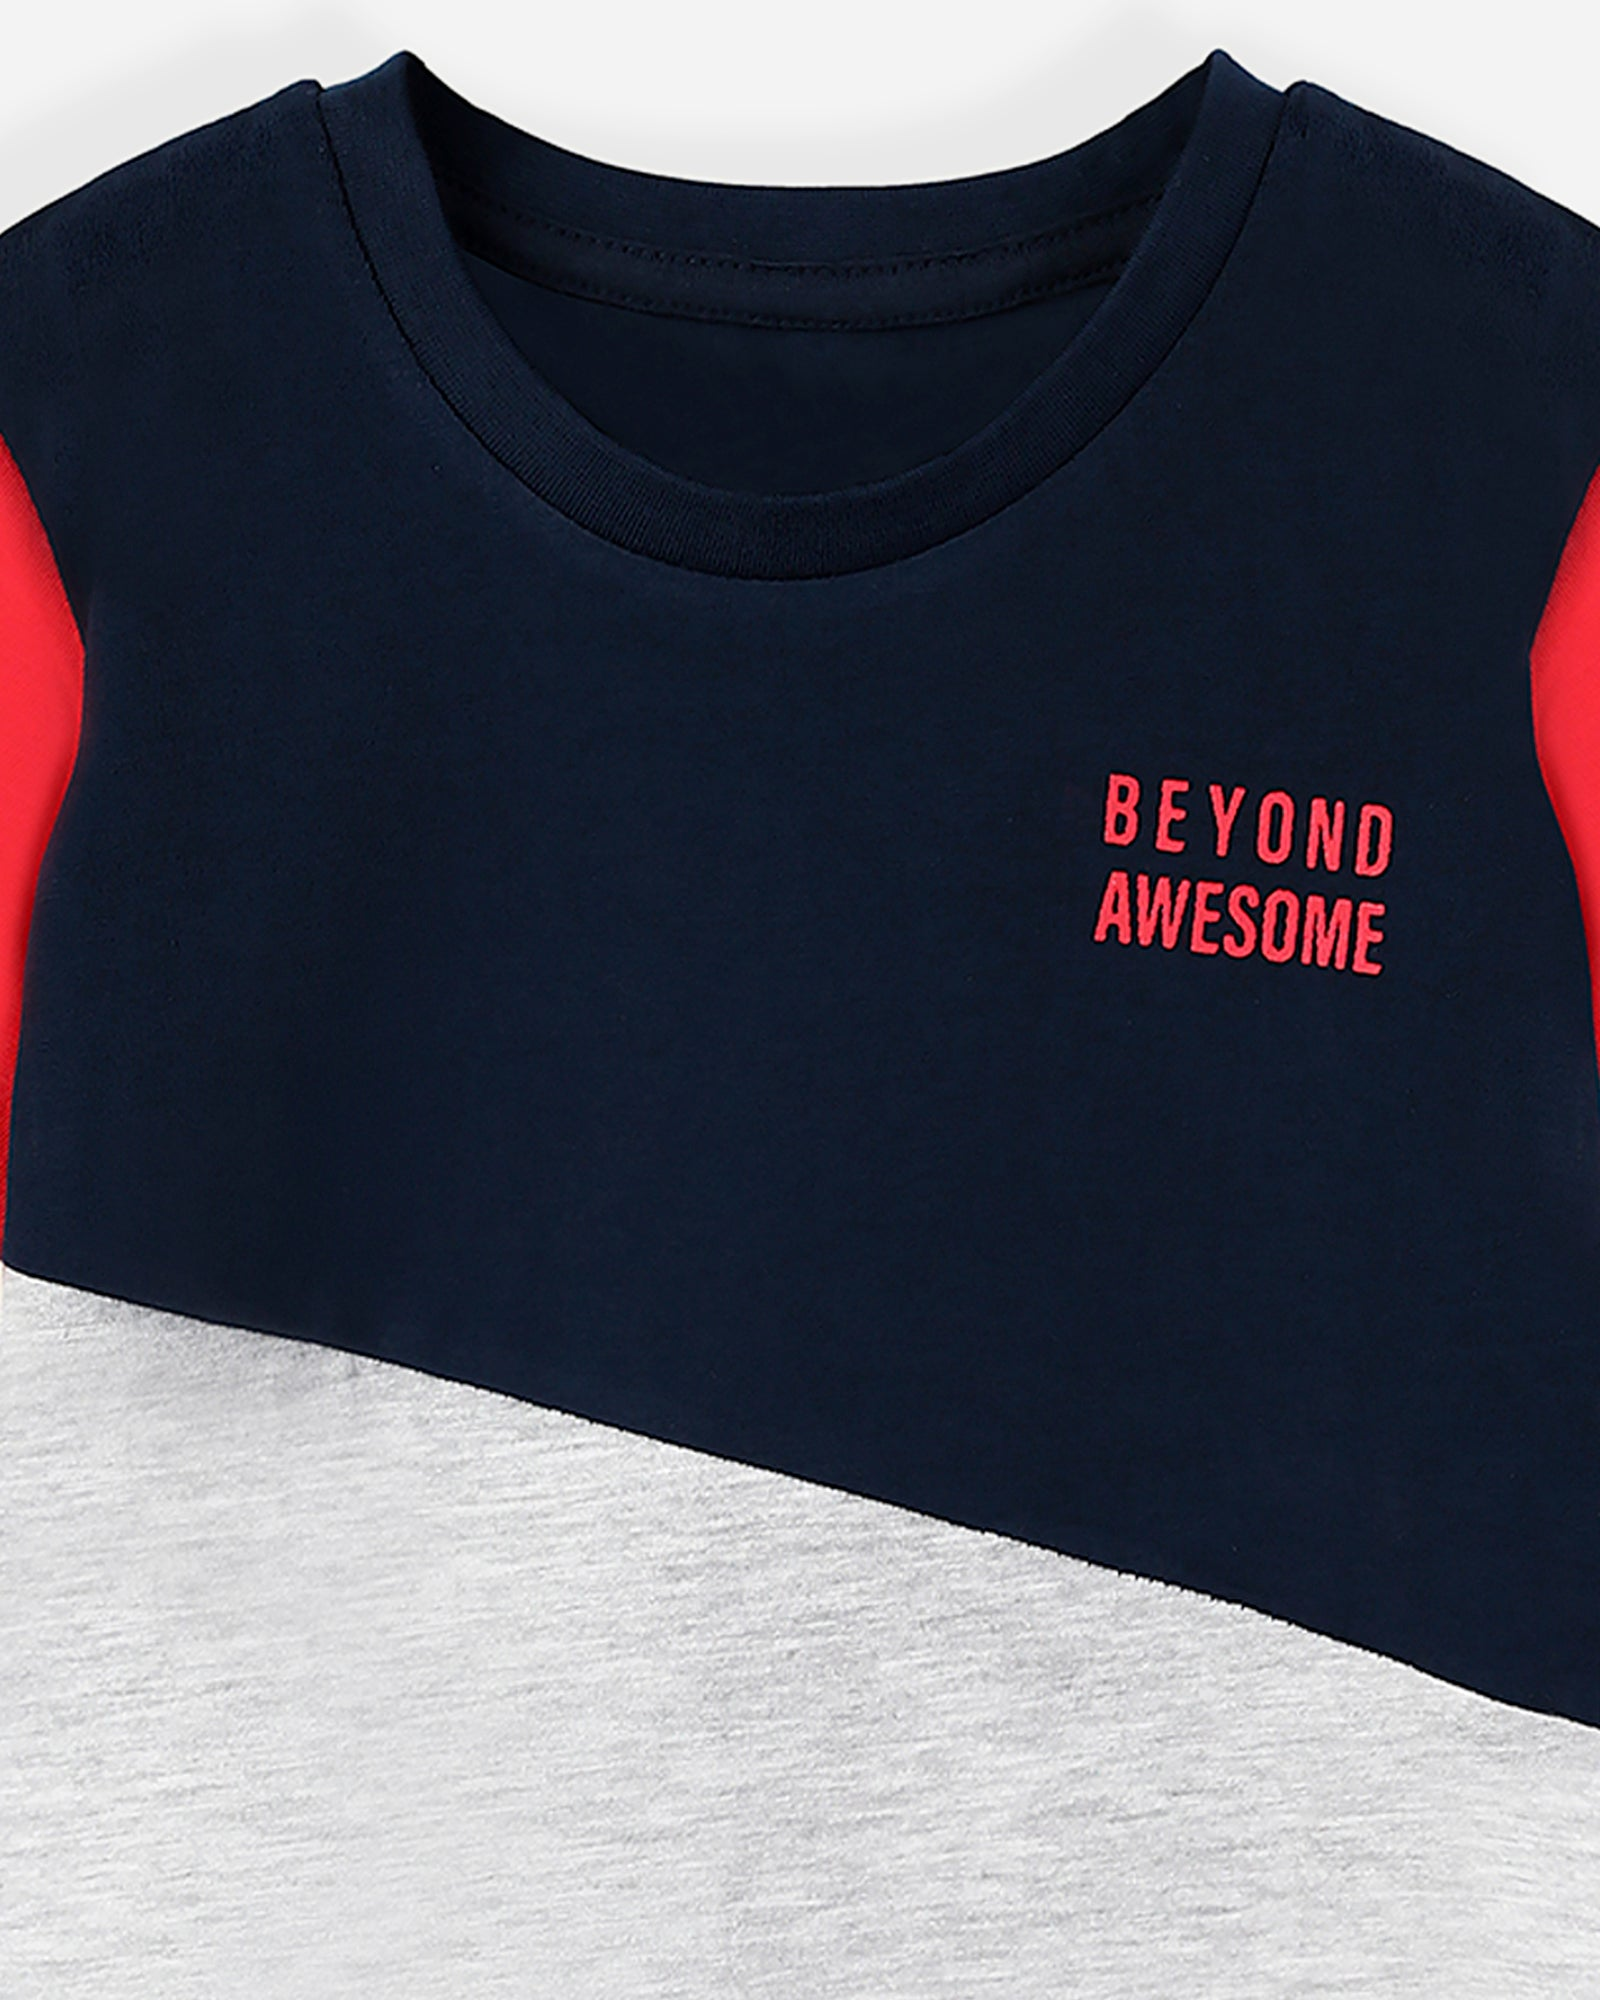 Beyond Awesome T-Shirt